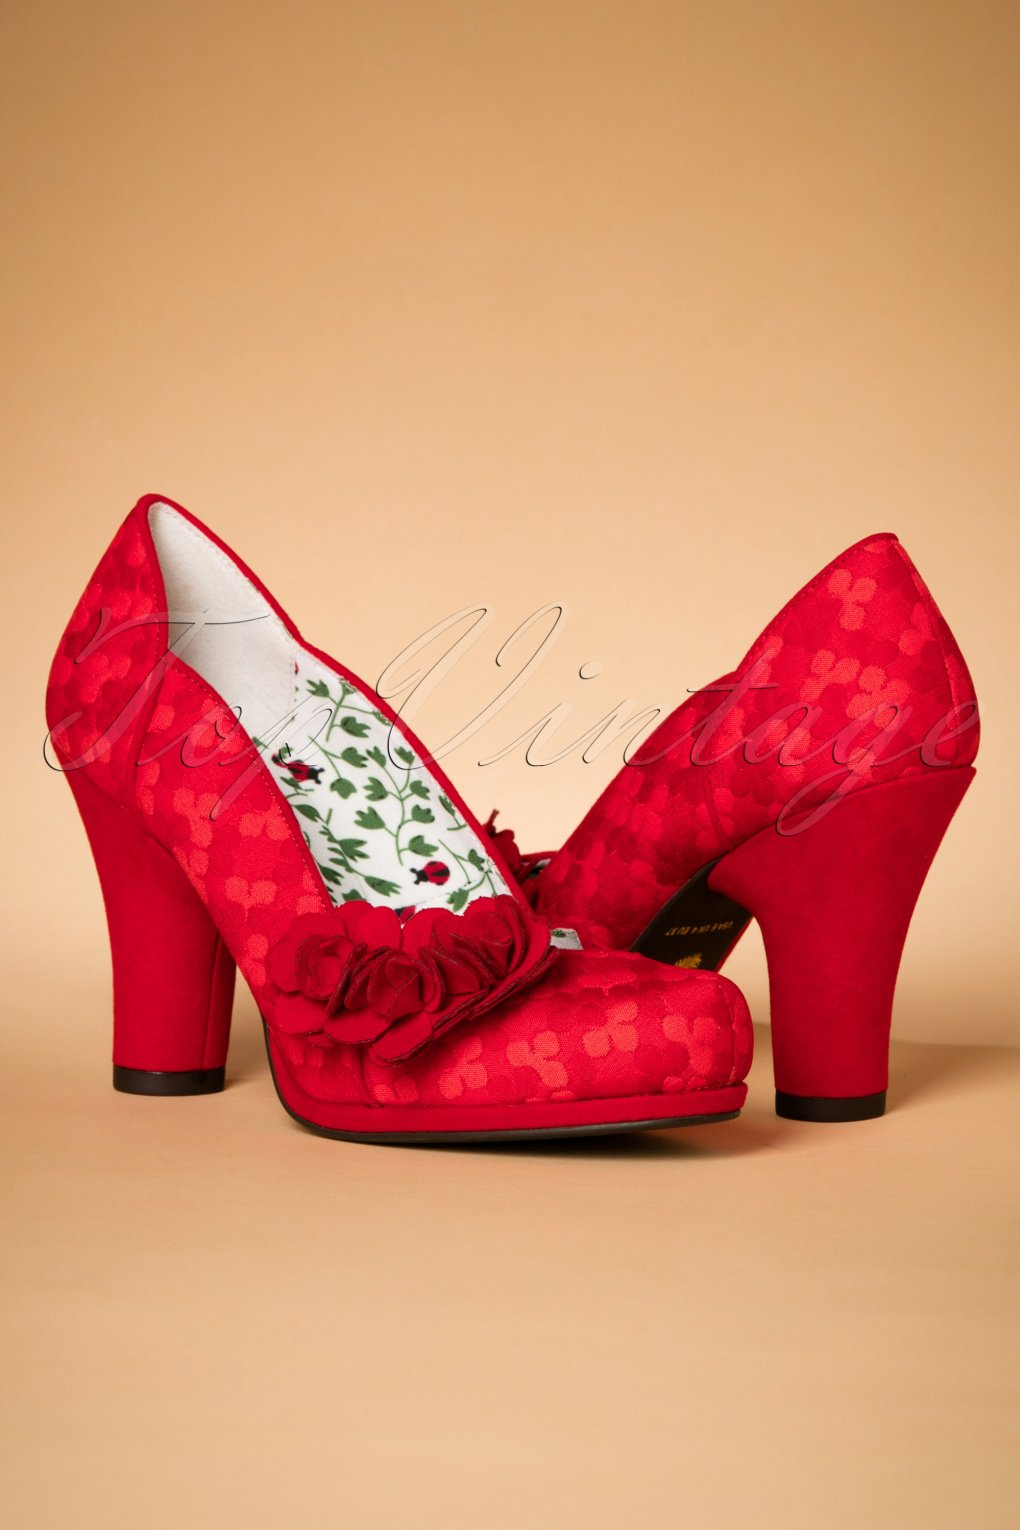 50s charlotte pumps in red for Charlotte dujardin 50 50